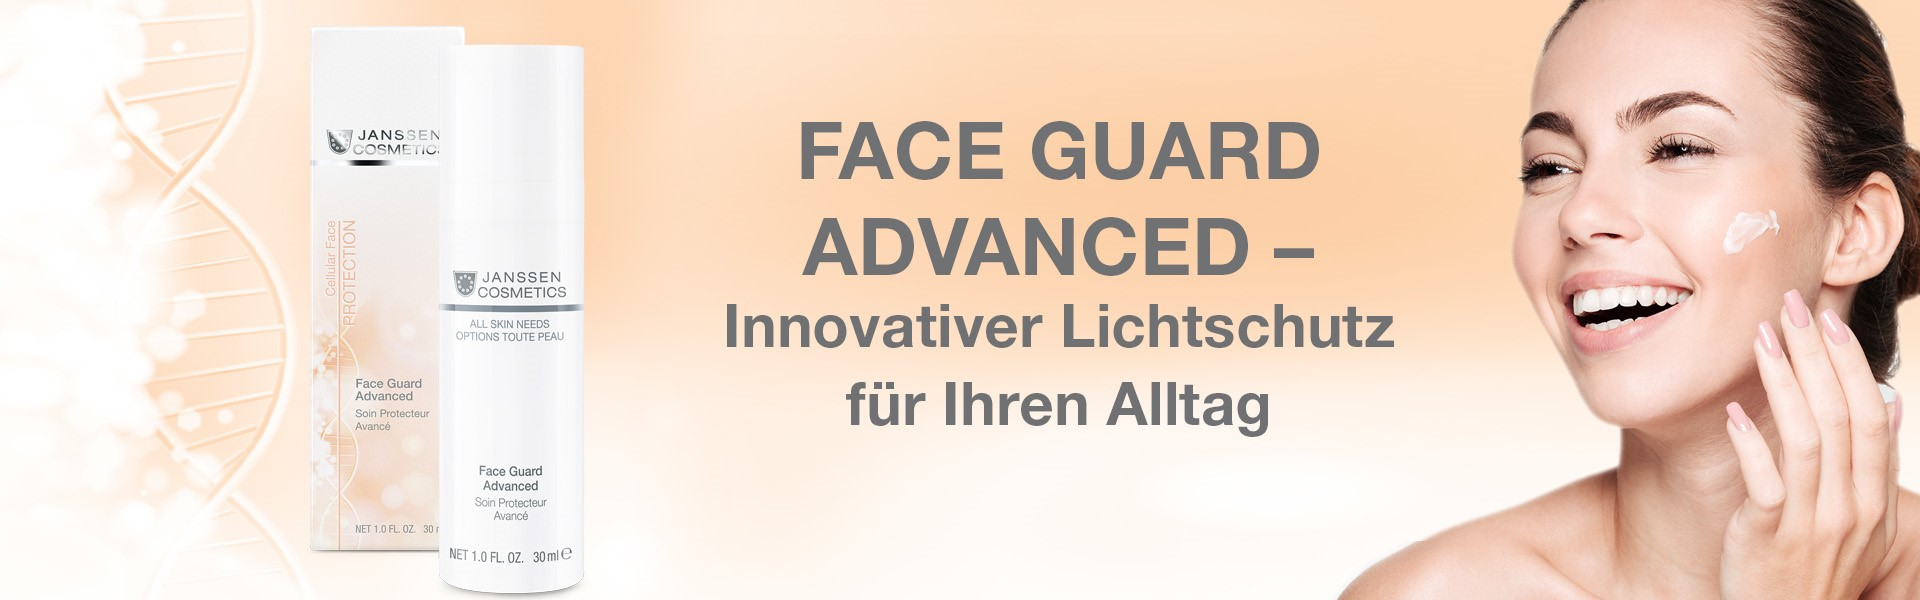 Face Guard Advanced